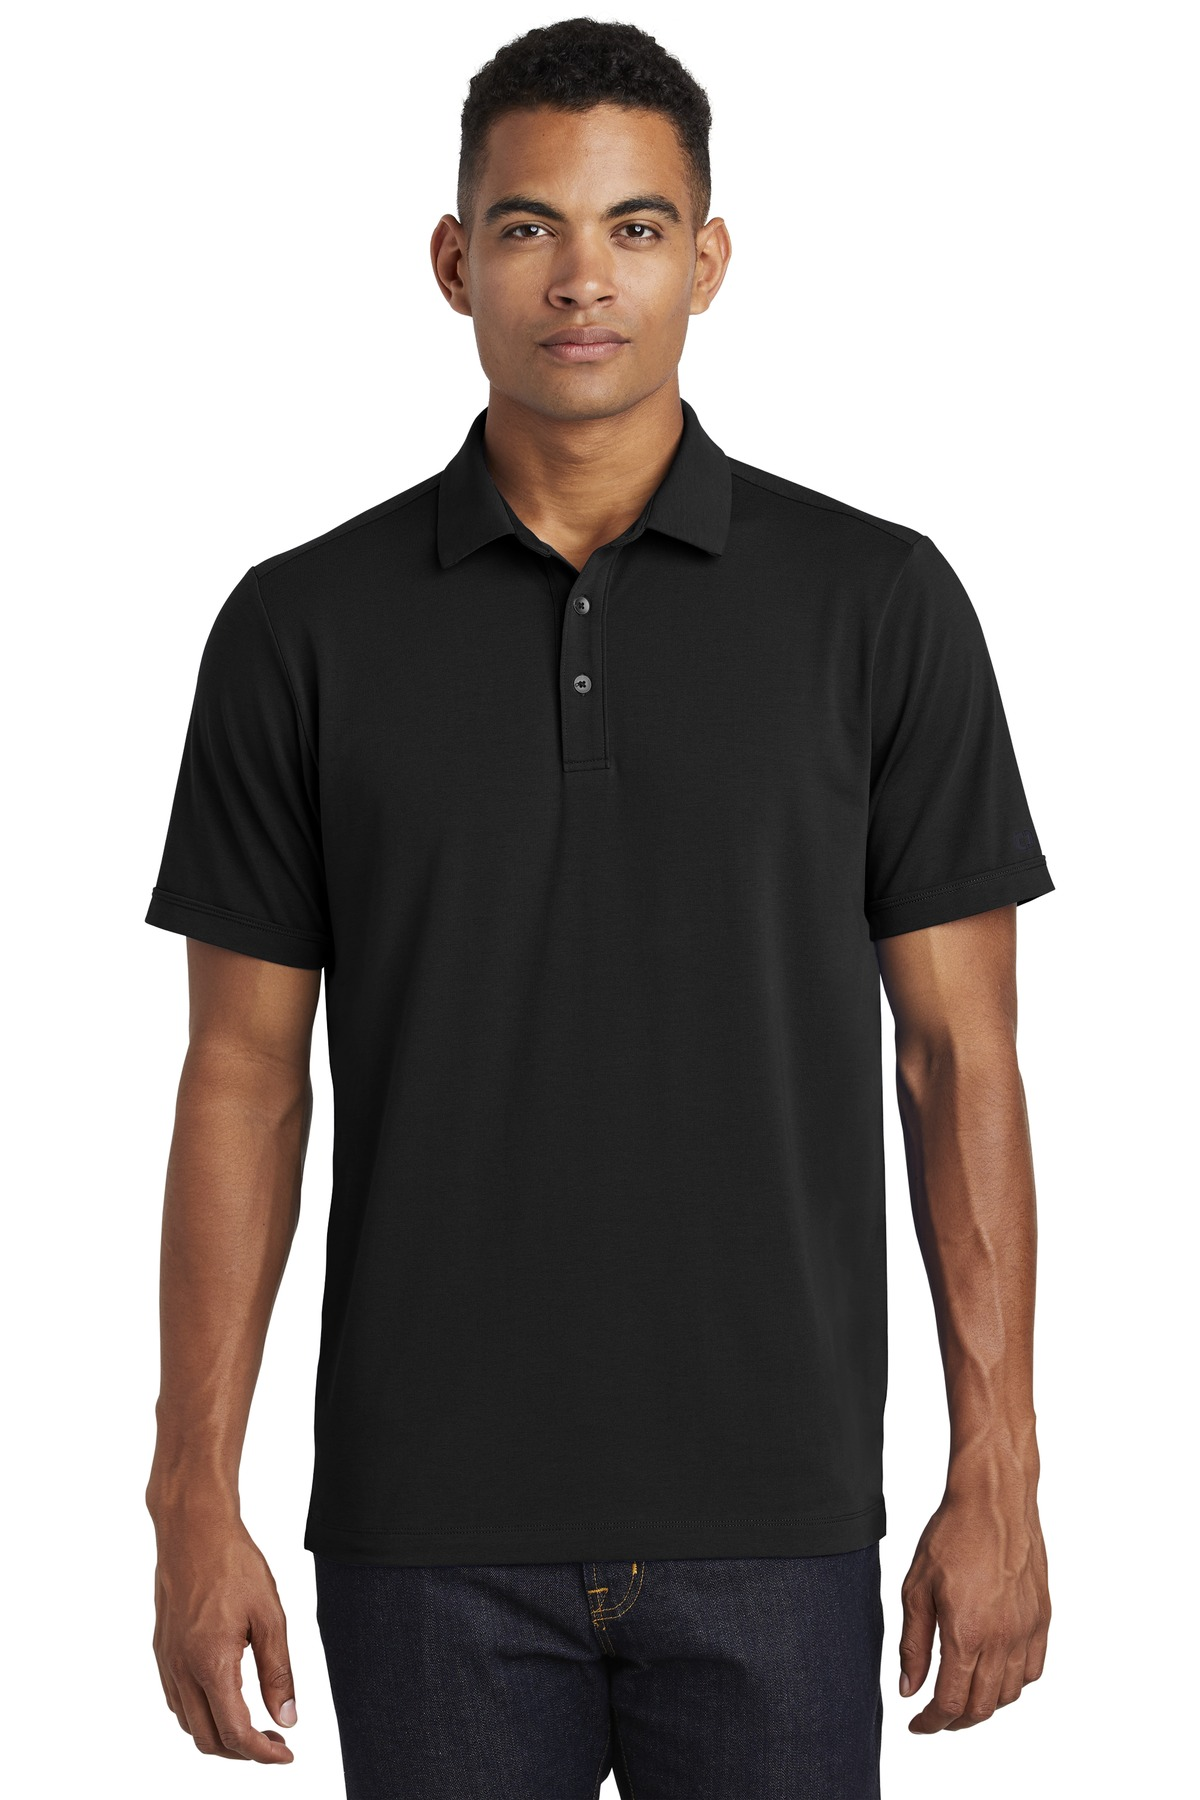 OGIO  ®  Limit Polo. OG138 - Blacktop